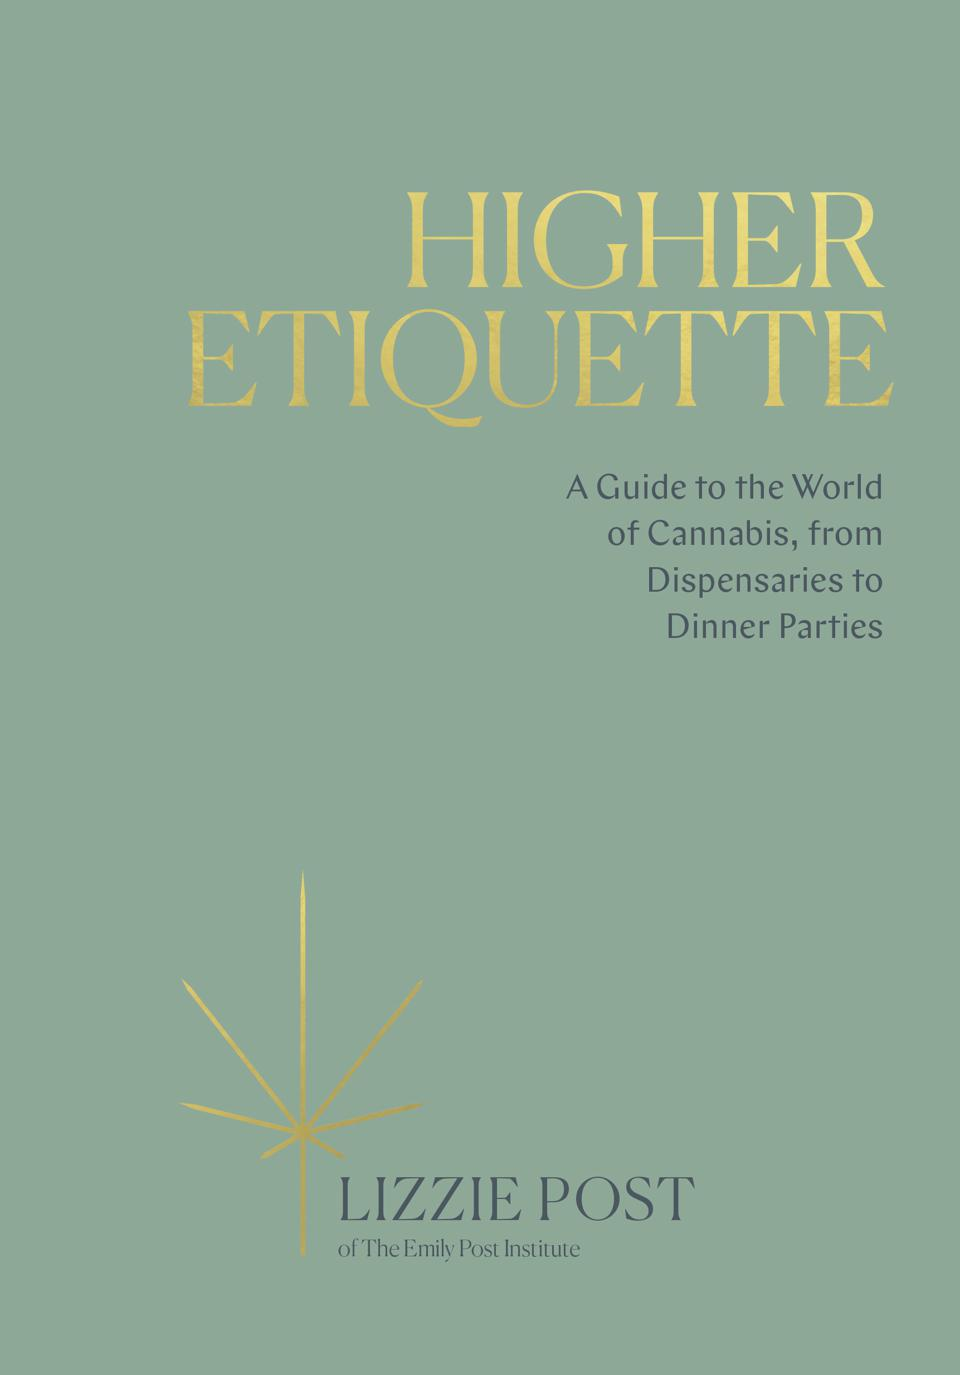 Higher Etiquette, Lizzie Post, Emily Post Institute, cannabis books, cannabis culture